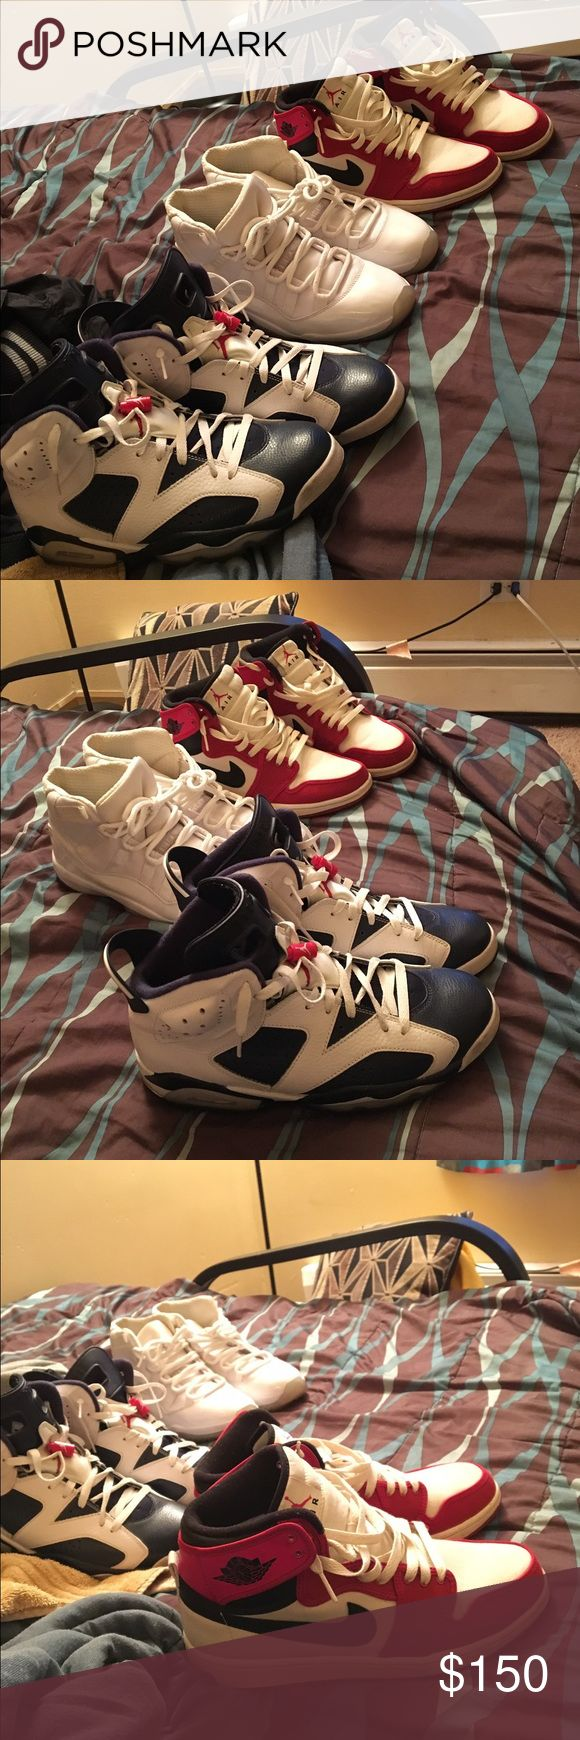 Jordans I'm trying to sell ASAP. Olympic 6s size 9.5 $150.   Retro 1s fabric edition size 9.5 $150. Anniversary 11s size 10 $200 Jordan Shoes Sneakers